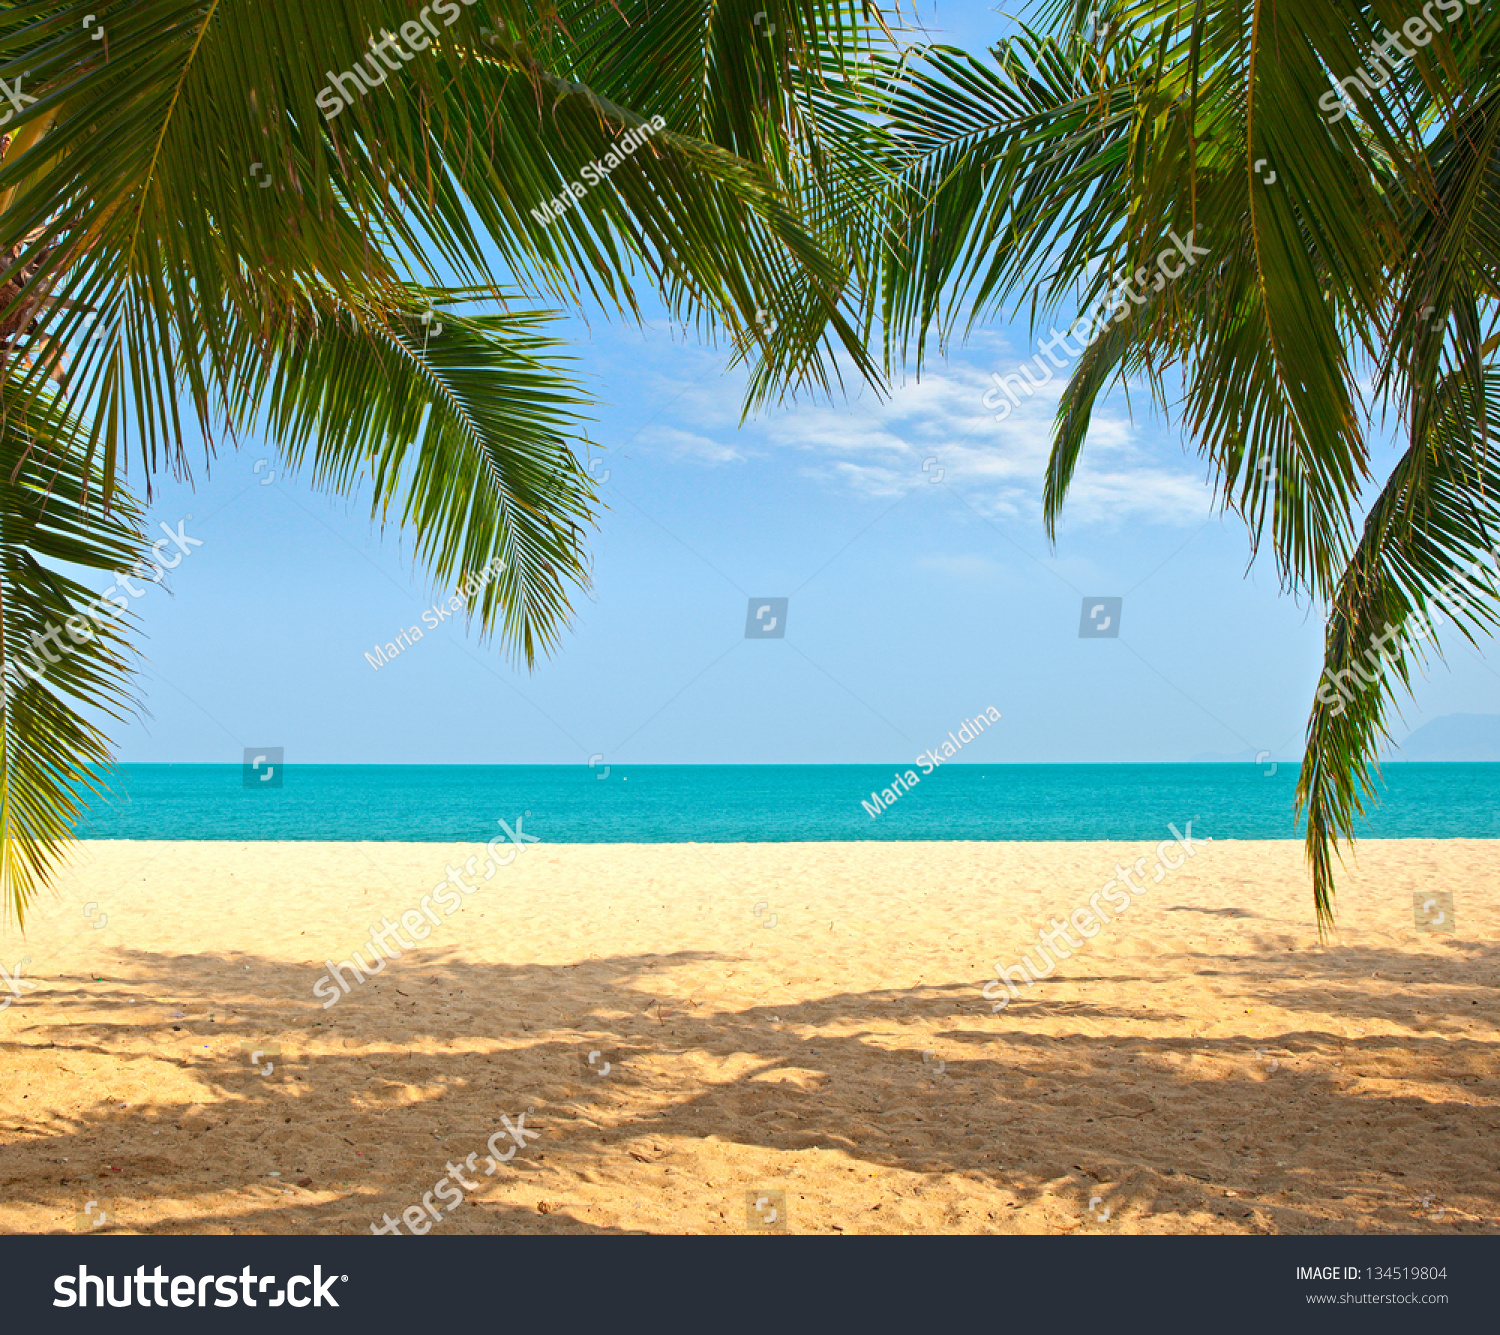 Palm Tree Beach: Palm Tree Leaves Over Luxury Beach Stock Photo 134519804